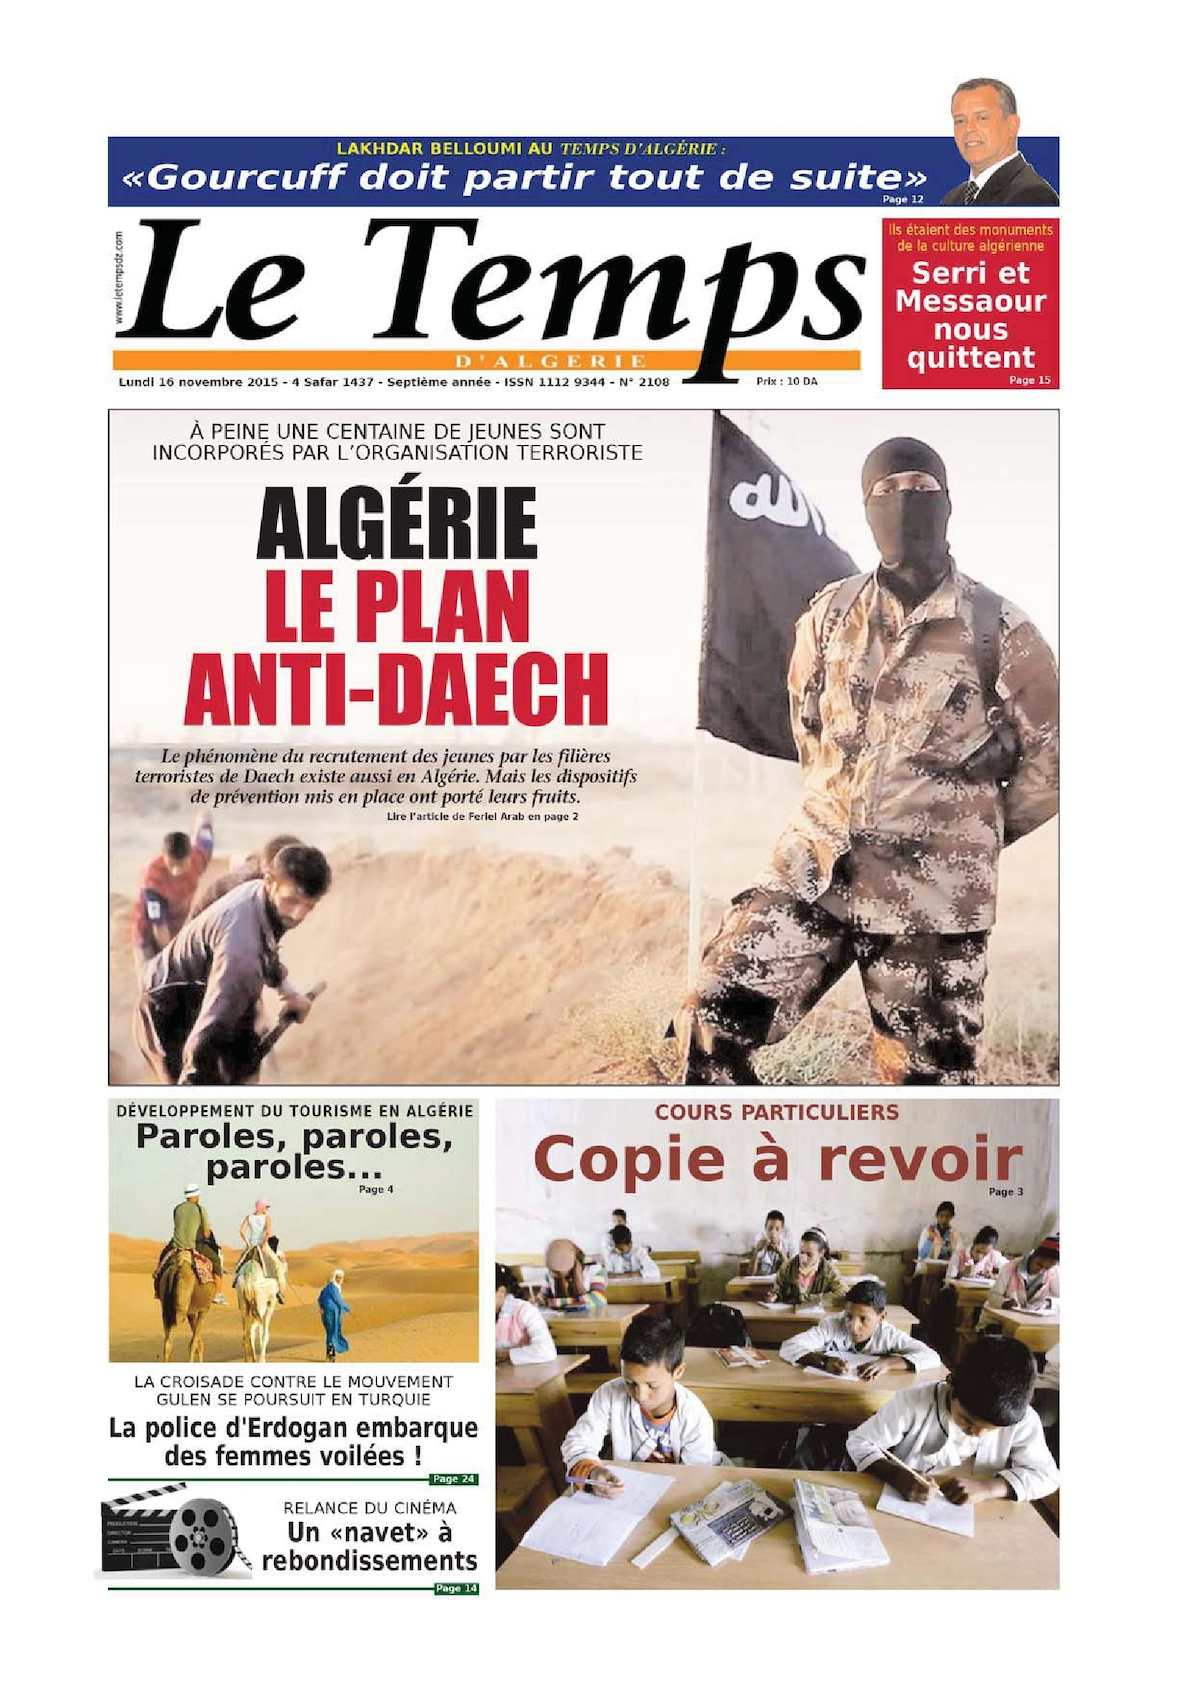 daech menace algerie